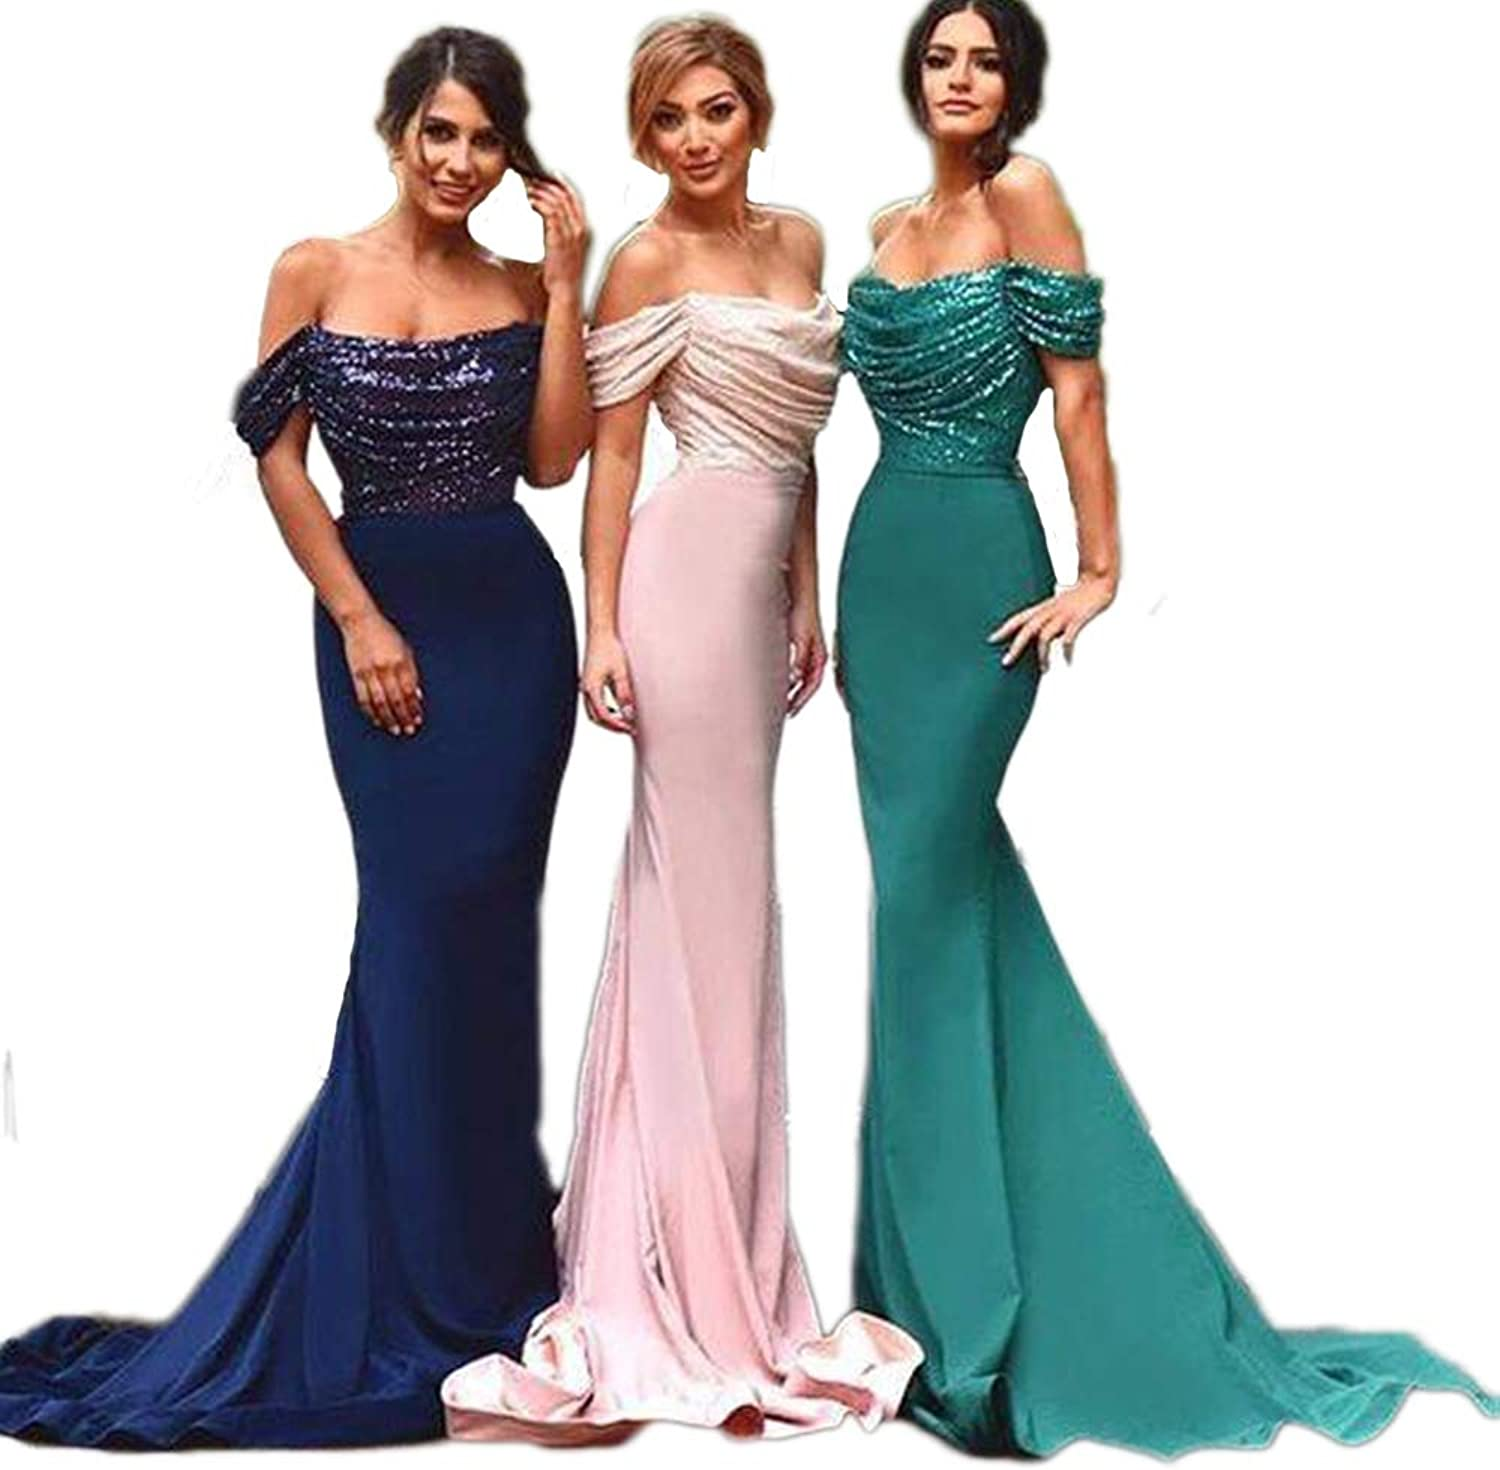 XJLY Women's Off The Shoulder Sequins Long Wedding Party Dresses Mermaid Bridesmaid Dresses